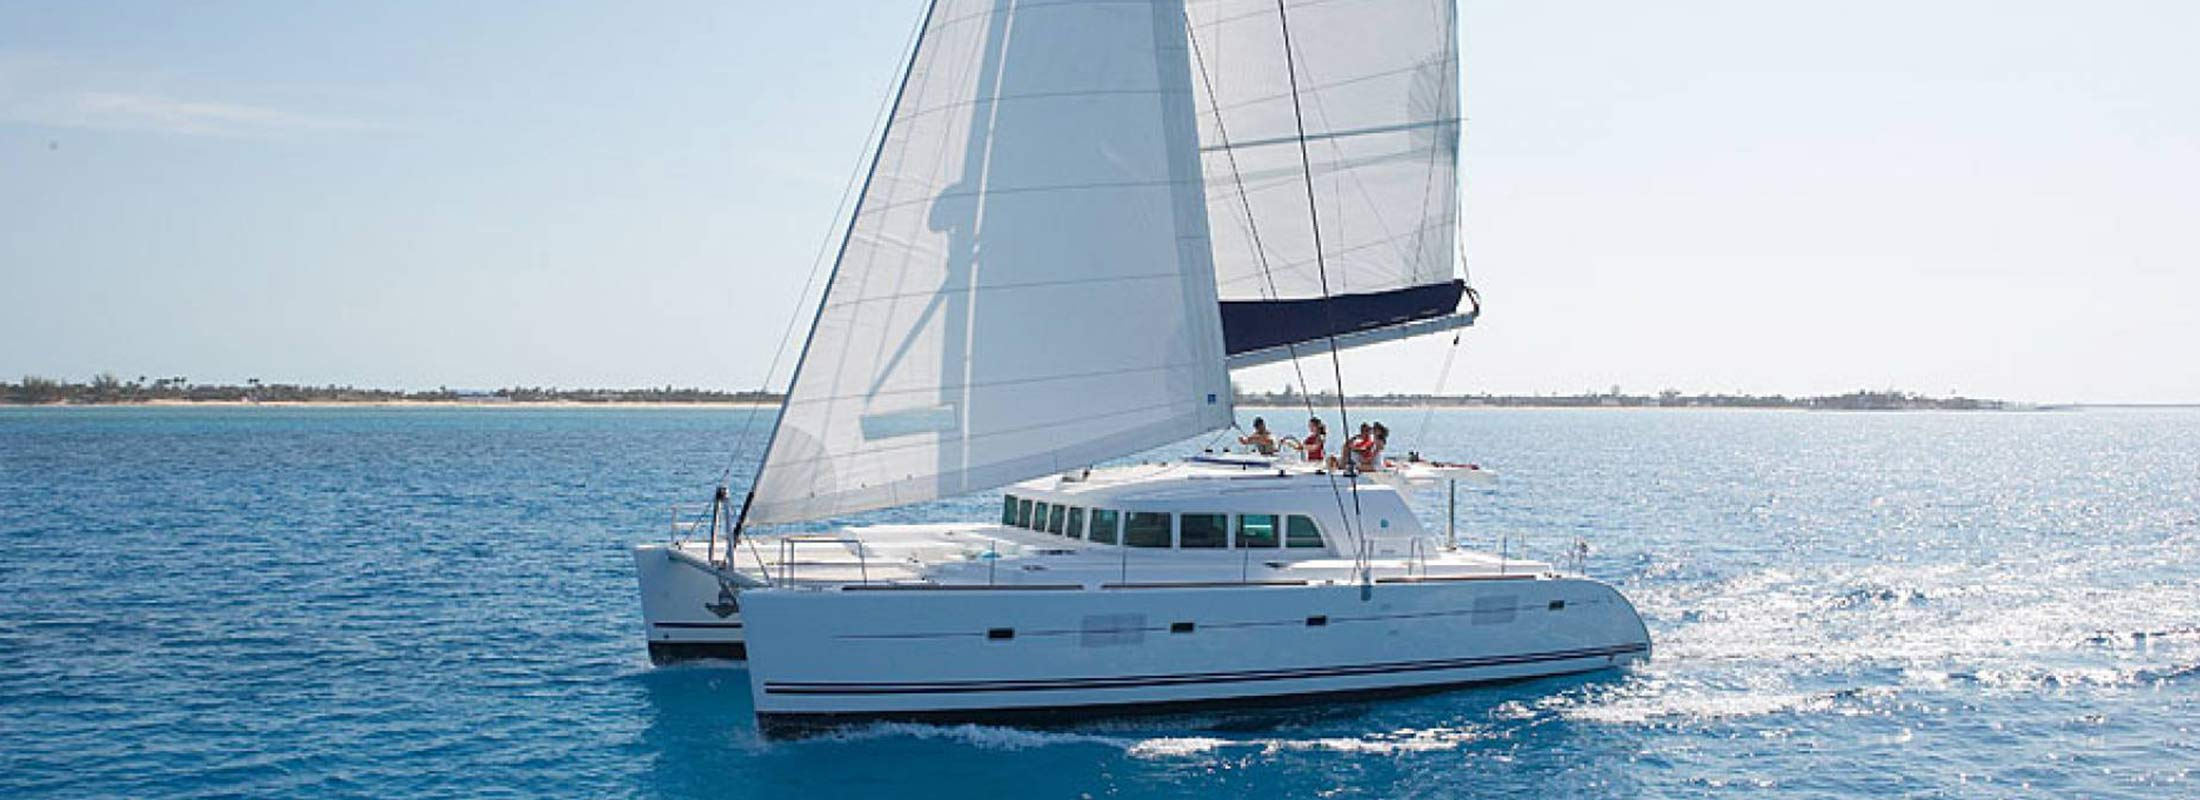 Whispers Sailing Yacht for Charter Carribean Sea The Bahamas slider 1